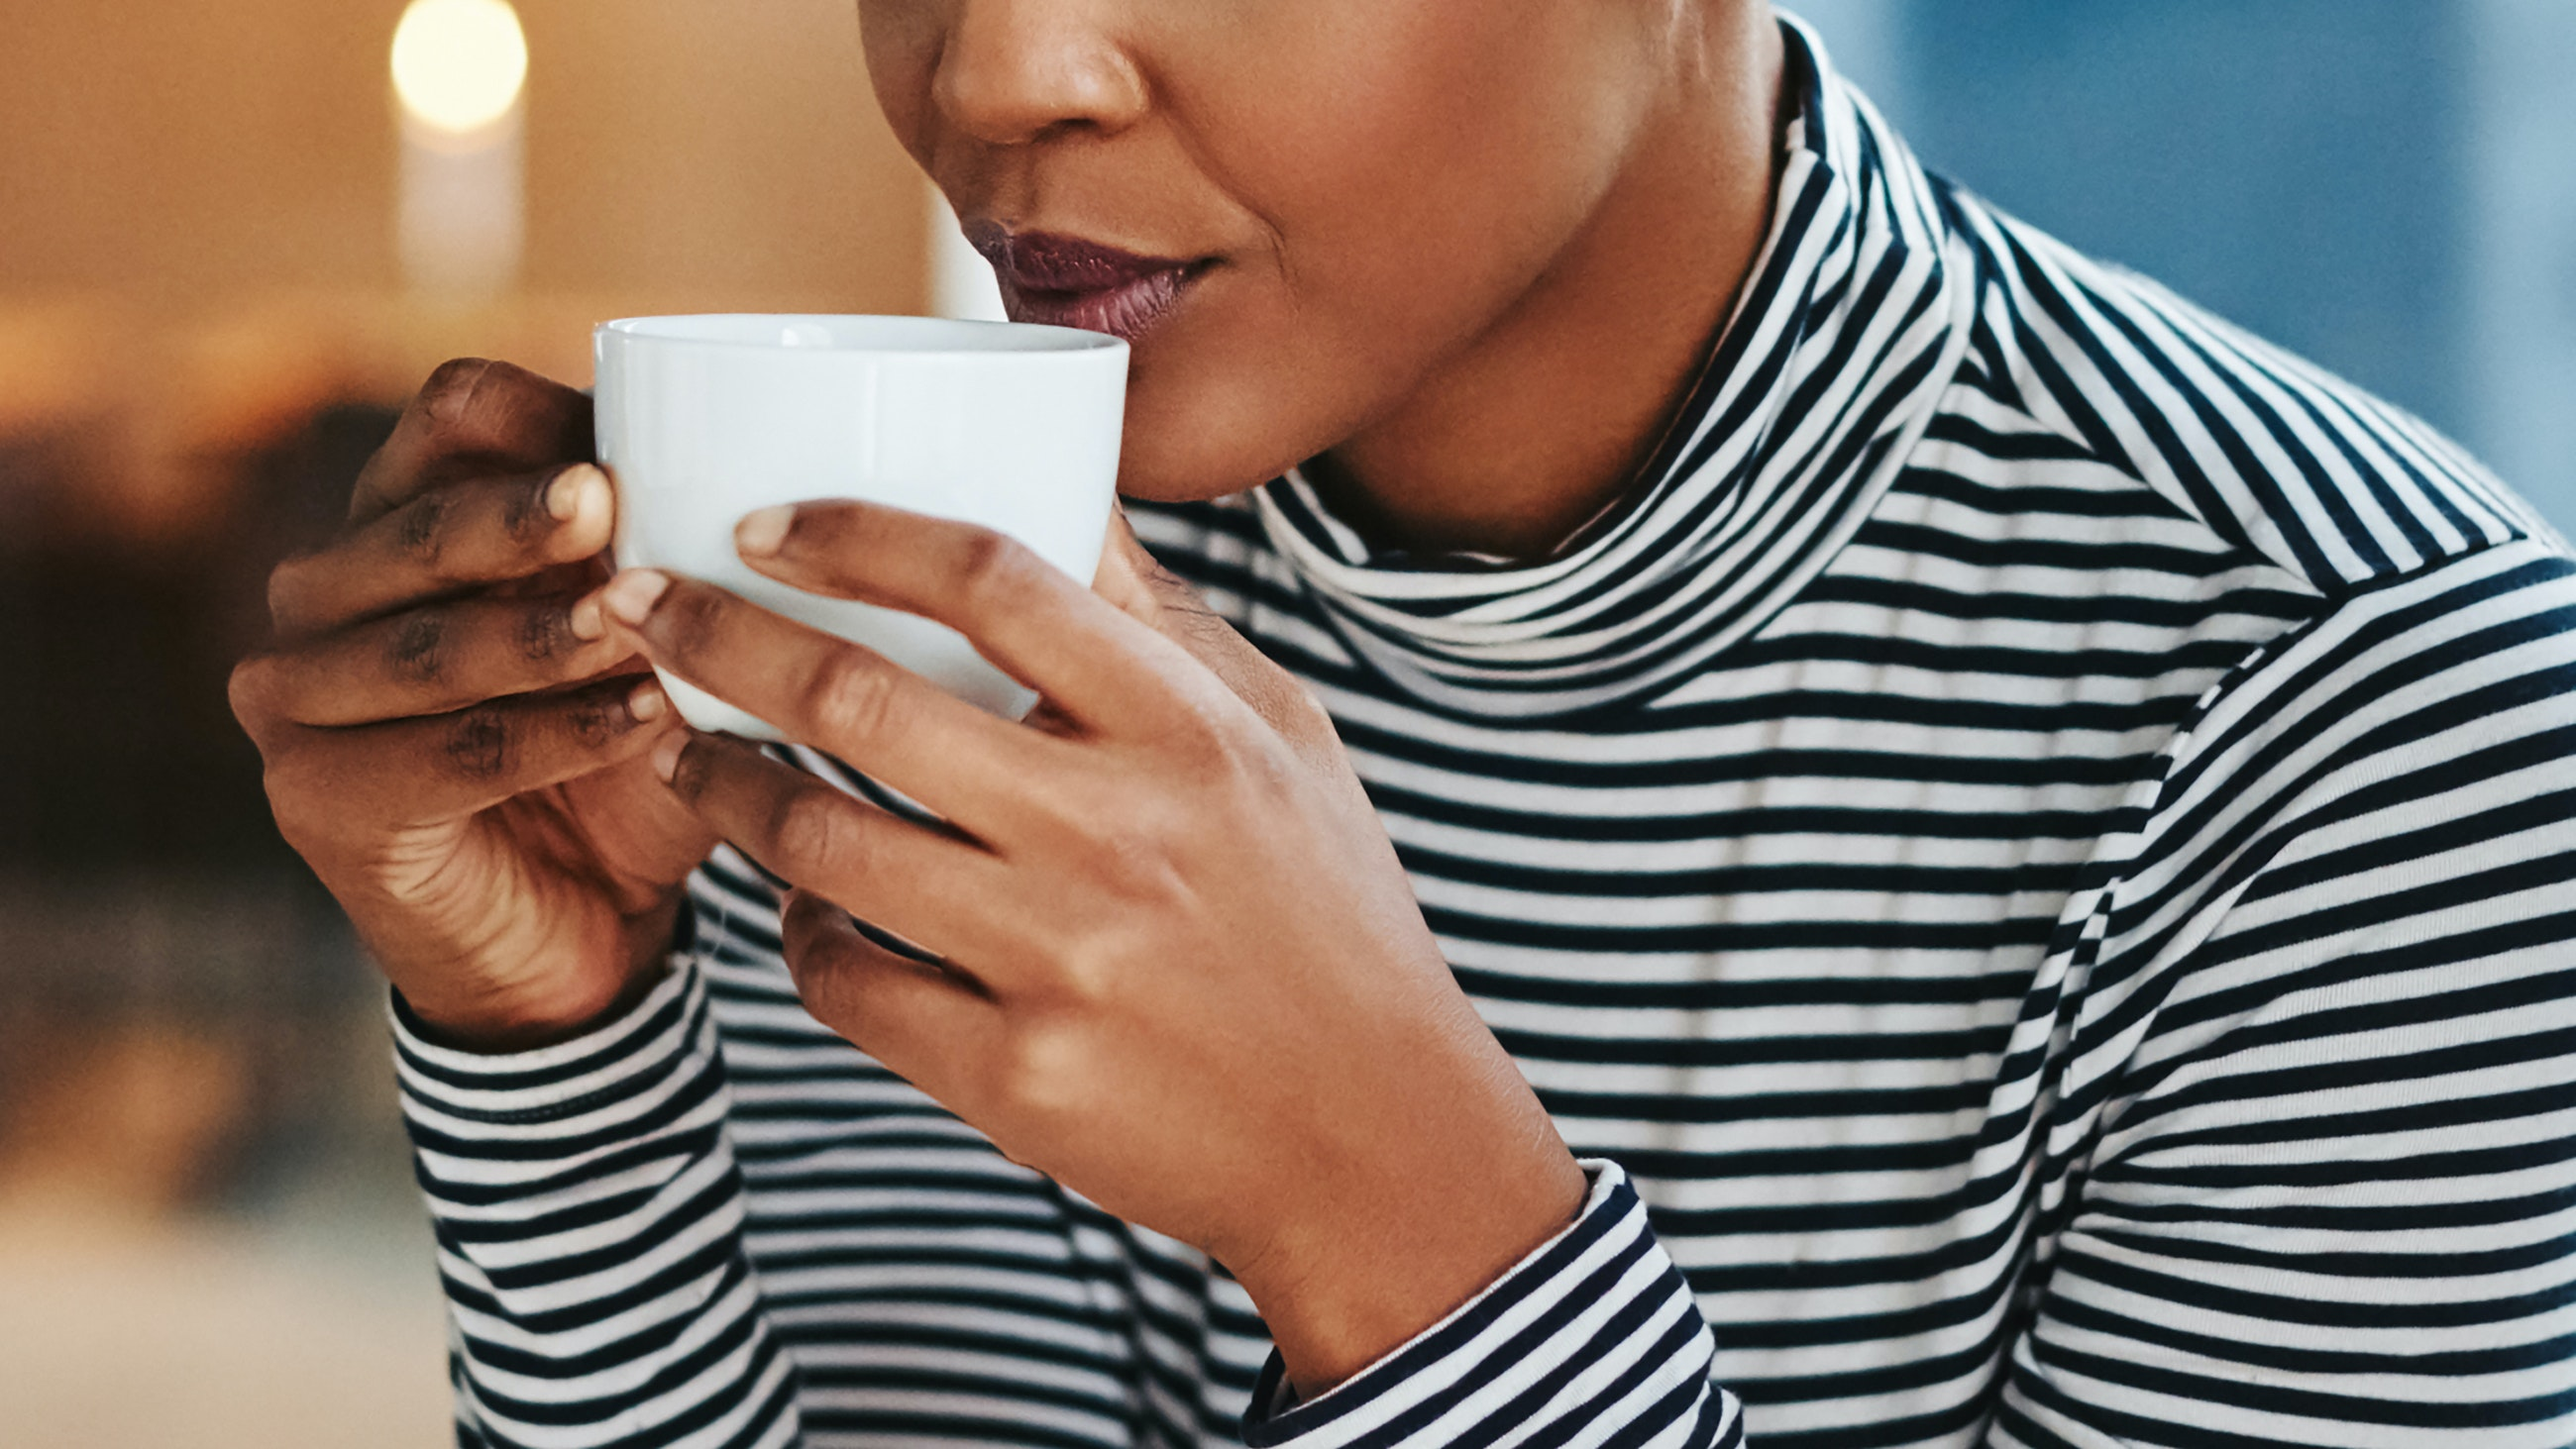 woman drinking coffee does coffee cause acne